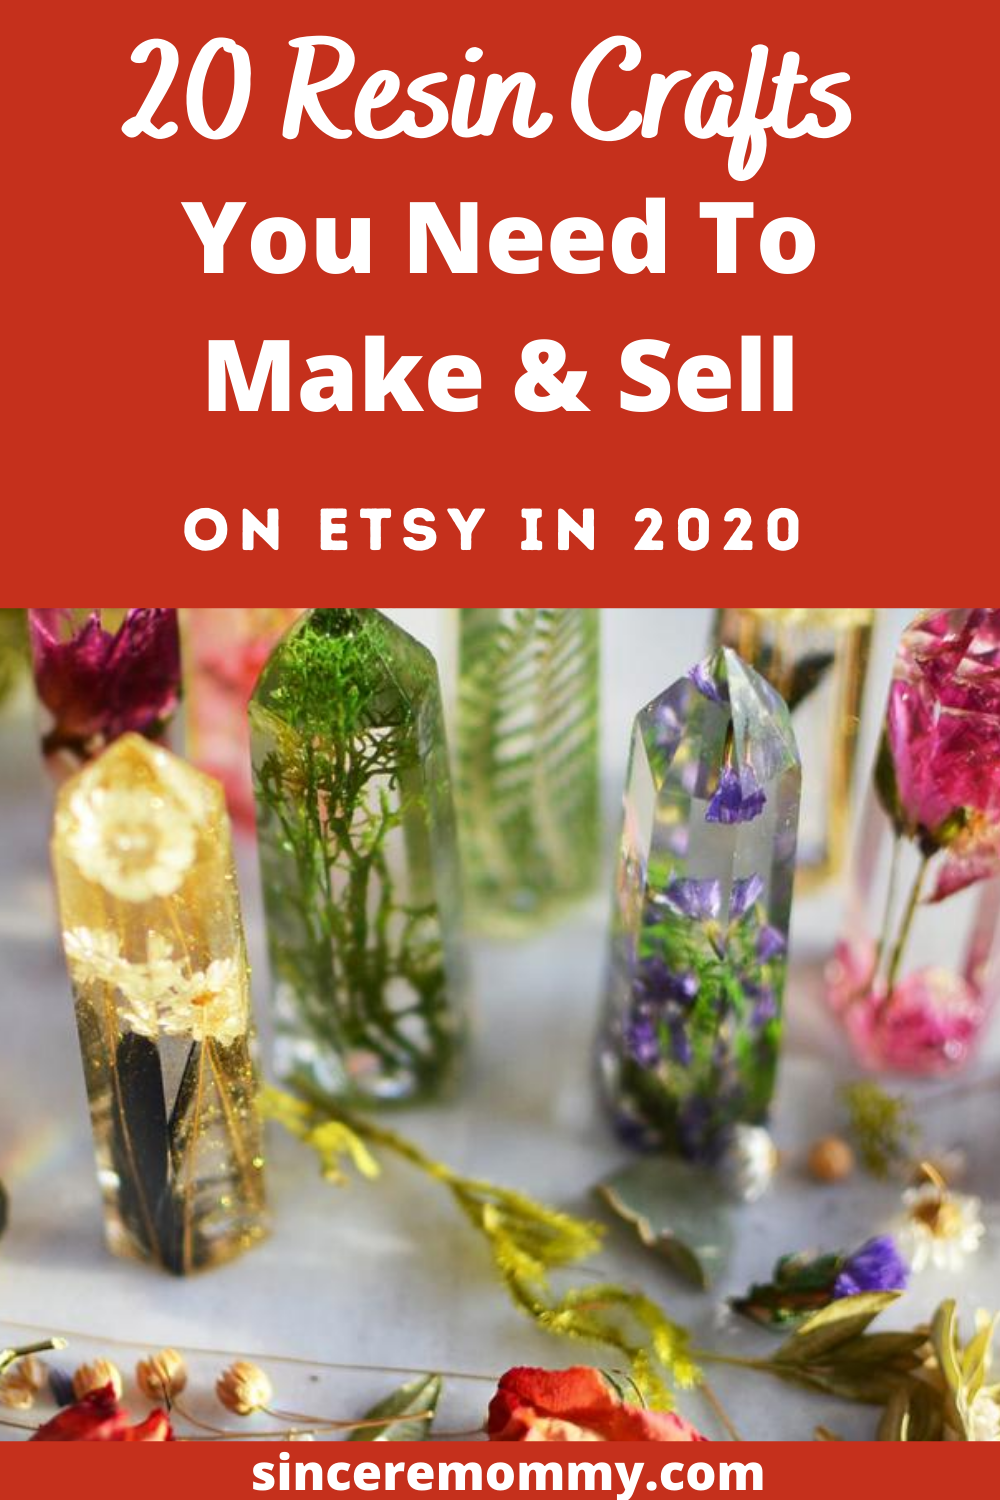 20 Resin Crafts You Need To Make & Sell On Etsy In